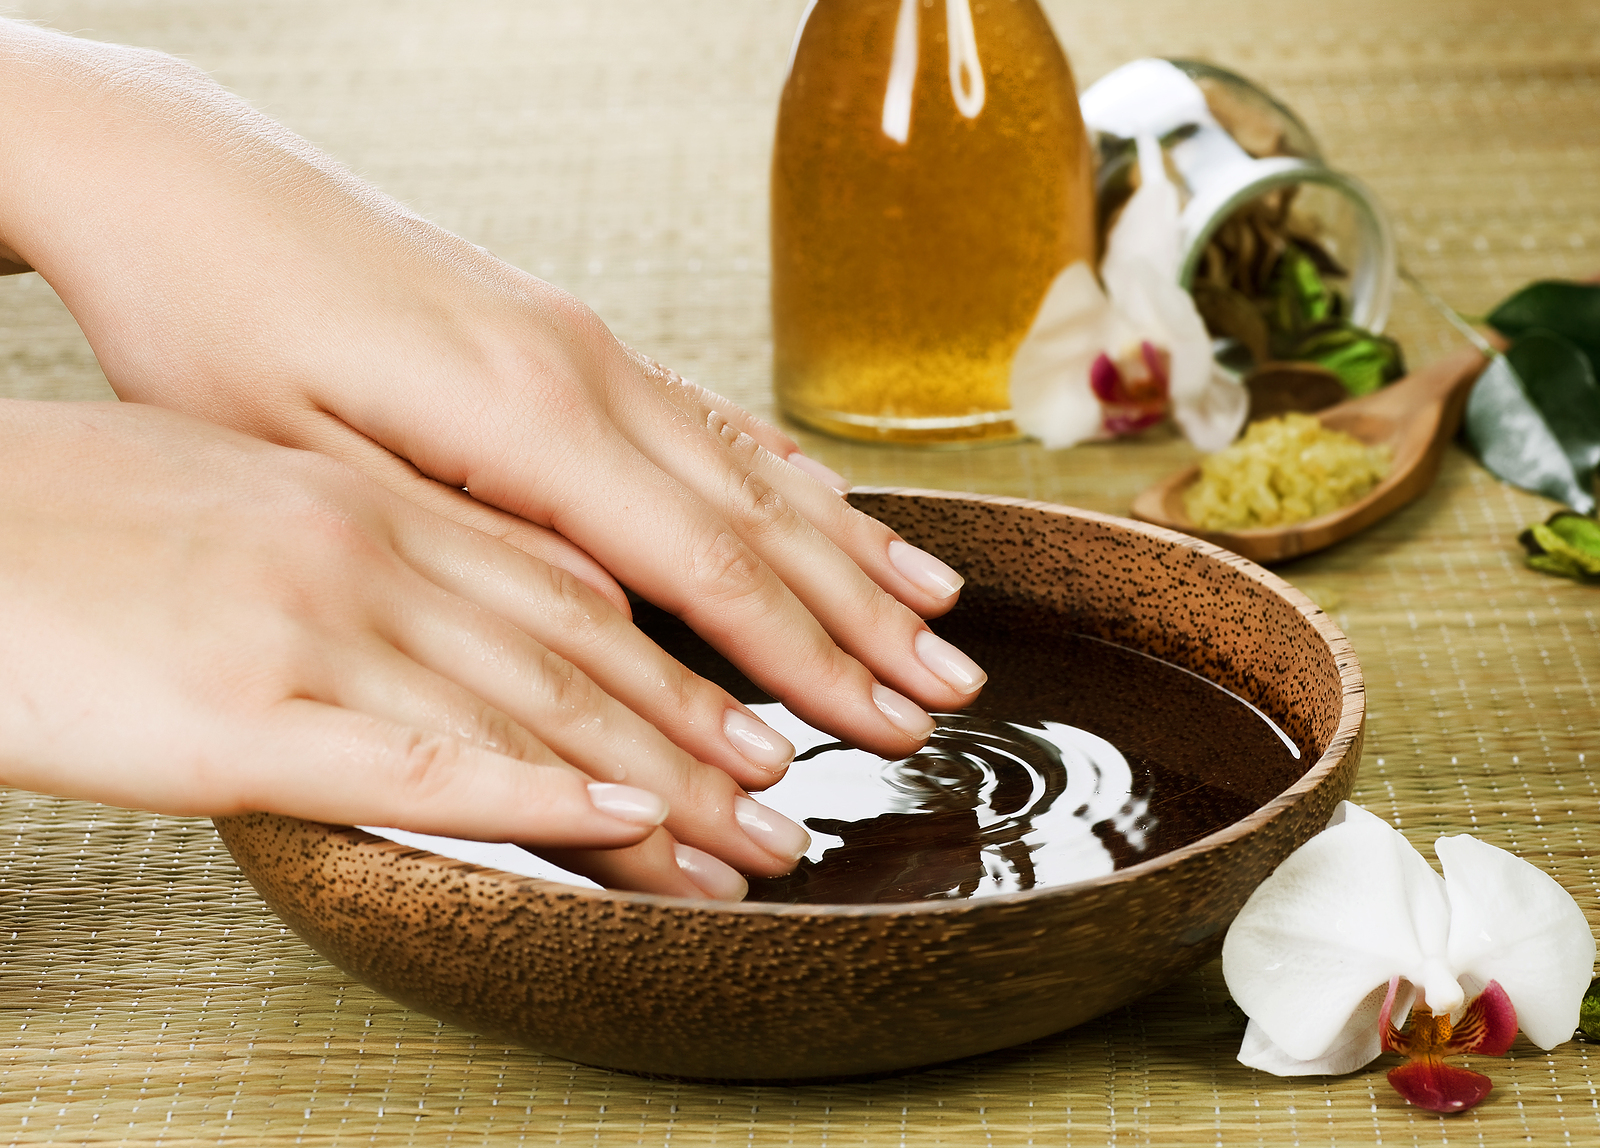 ... : Home » Nail Salon Atlanta Helps You In Taking Care Of Your Nails